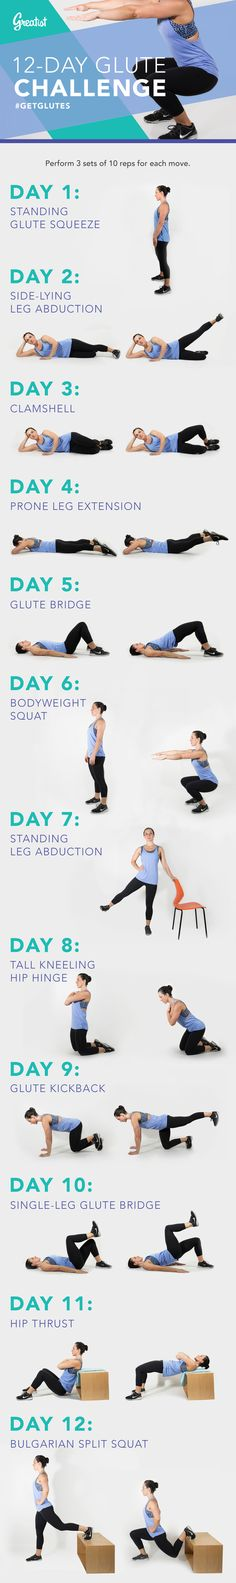 http://fitnessductor.com  12-Day Glute Challenge